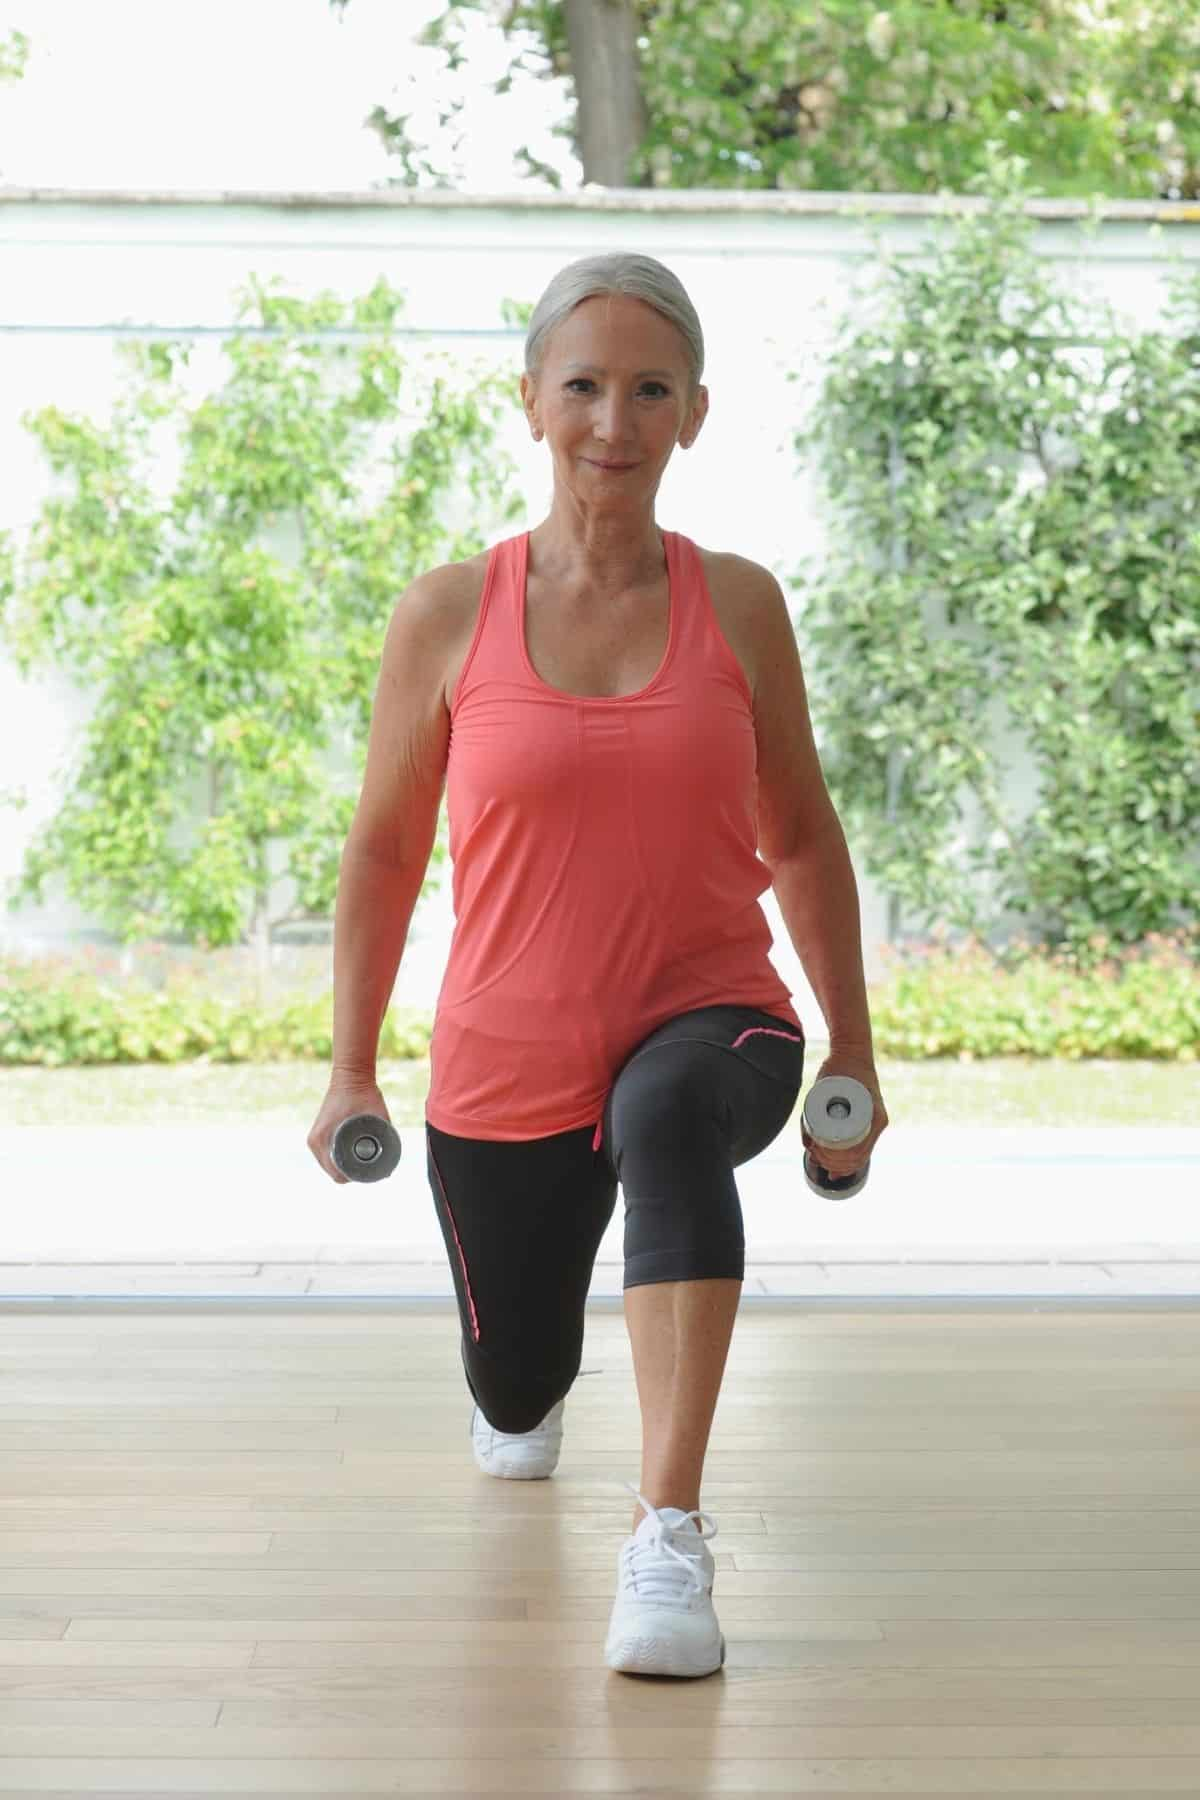 older woman doing lunges with dumbbells in each hand